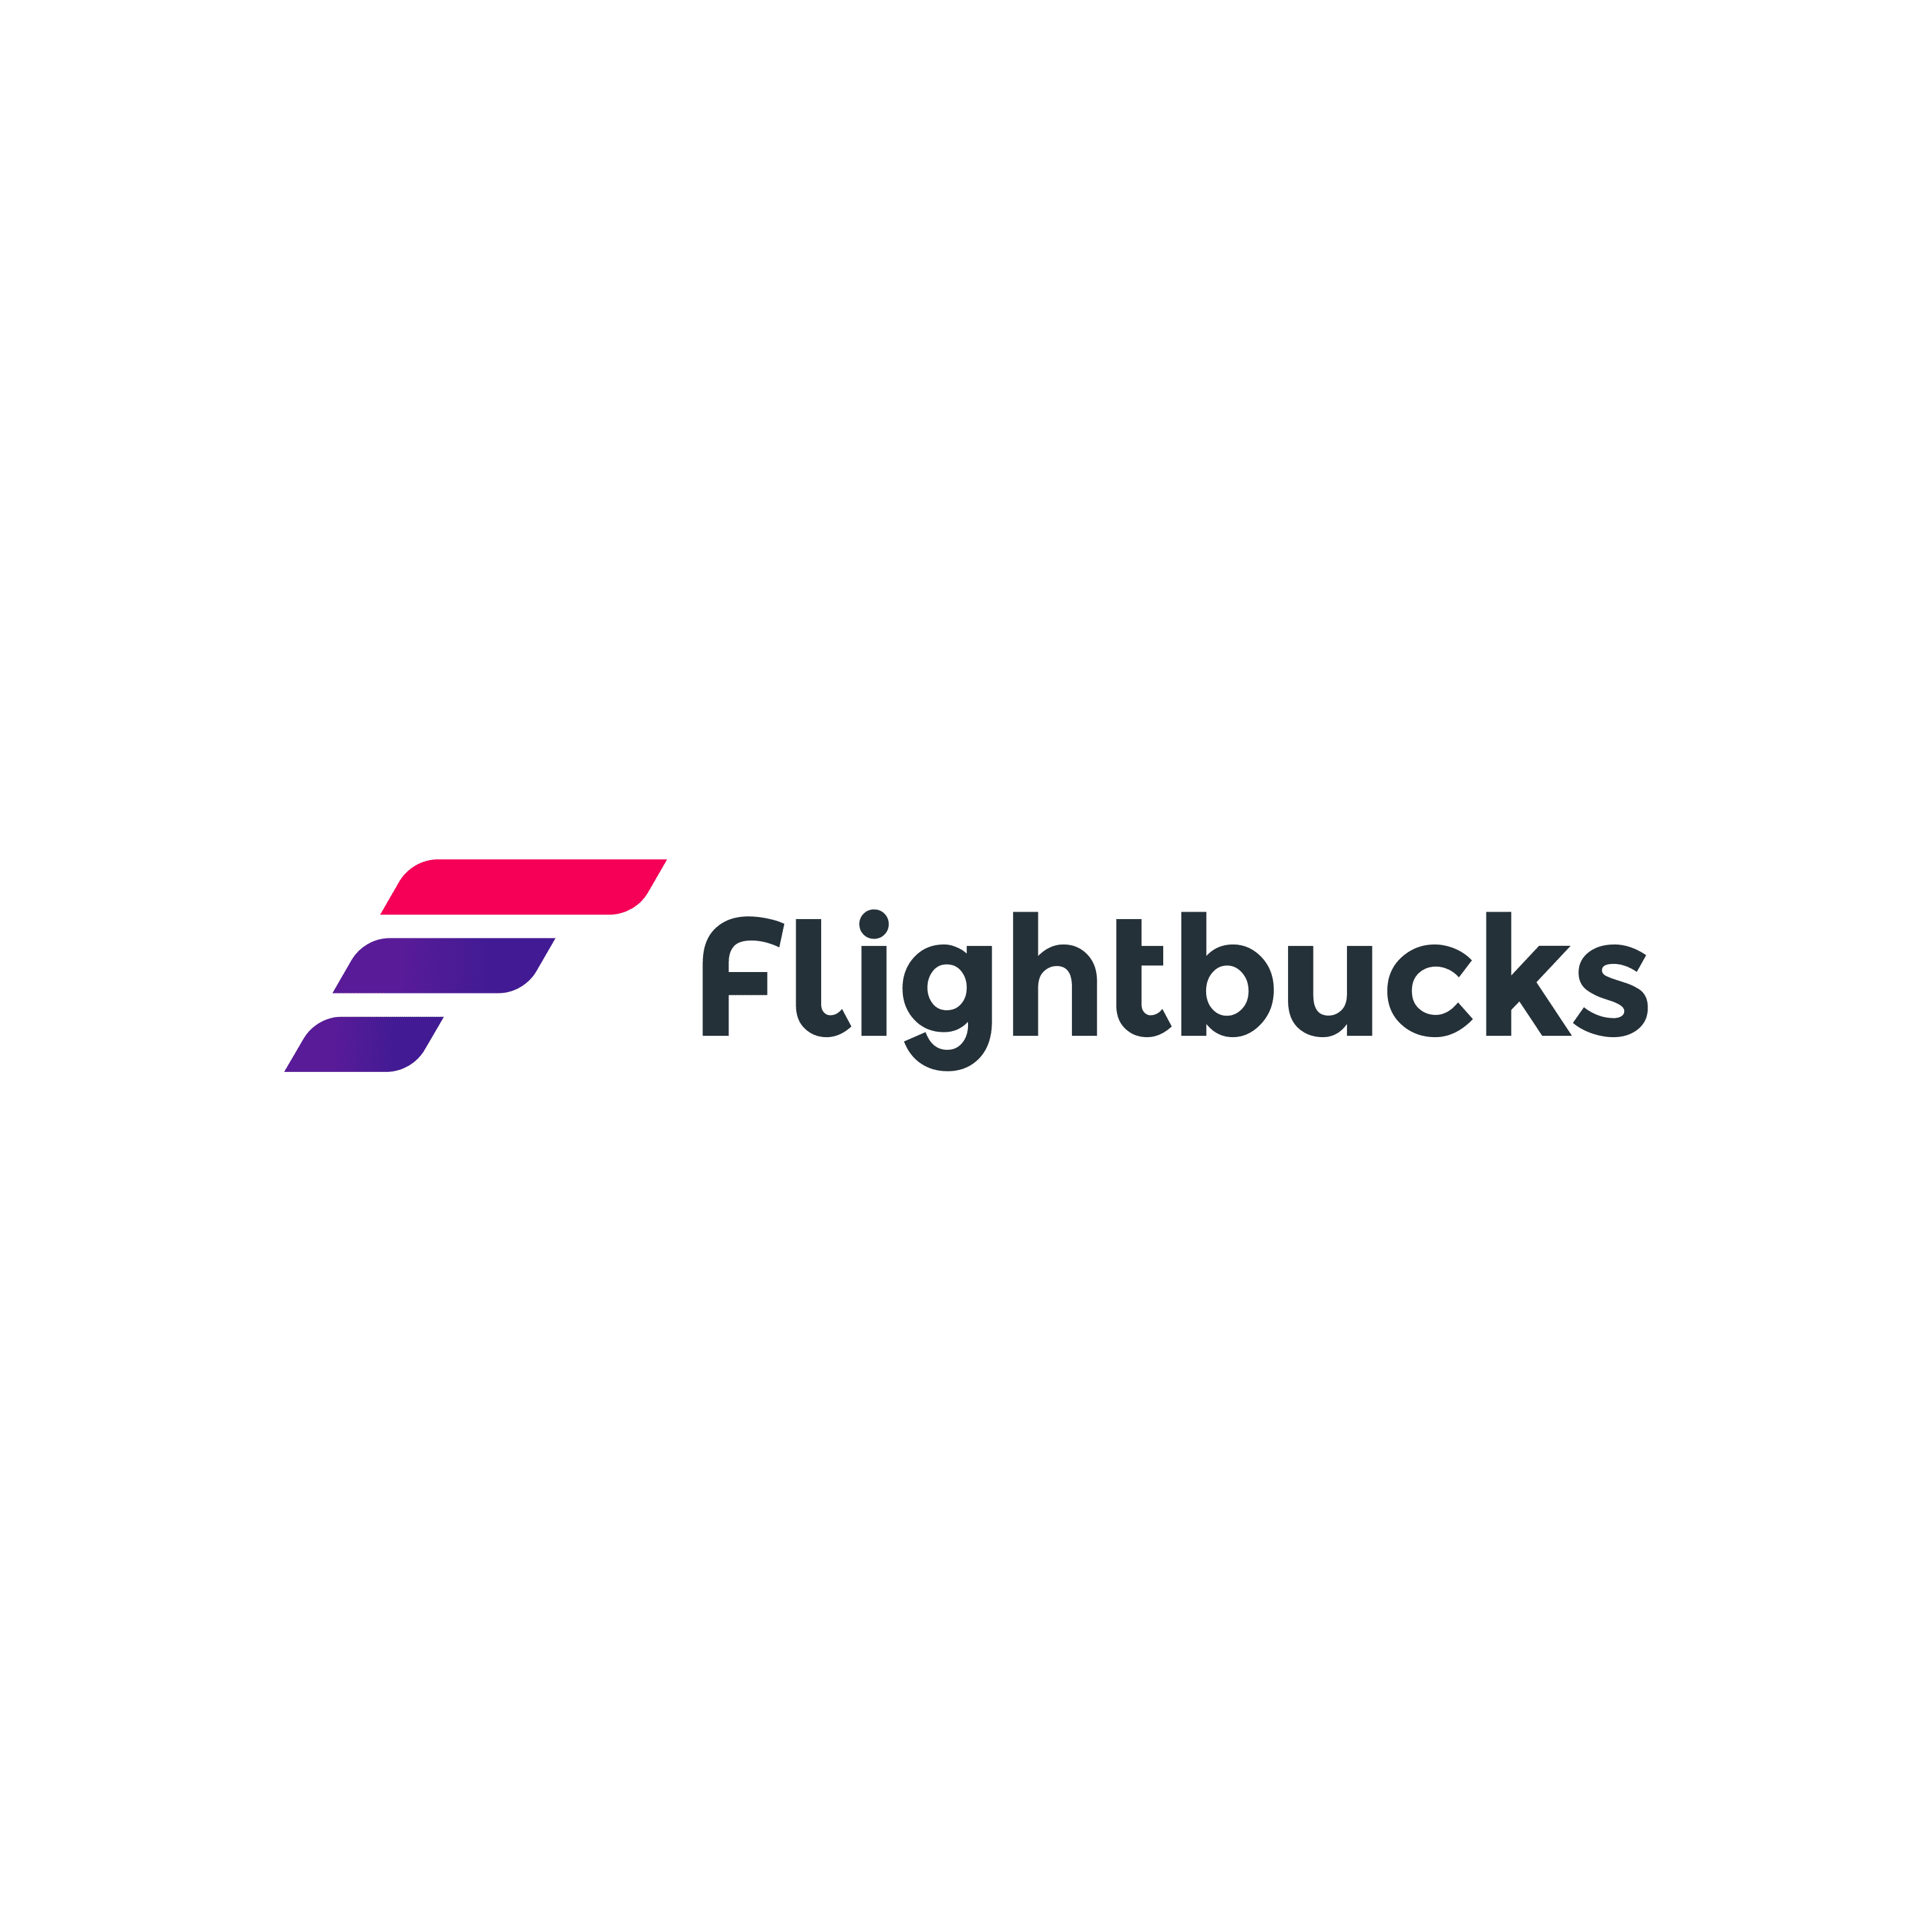 Flightbucks, Inc